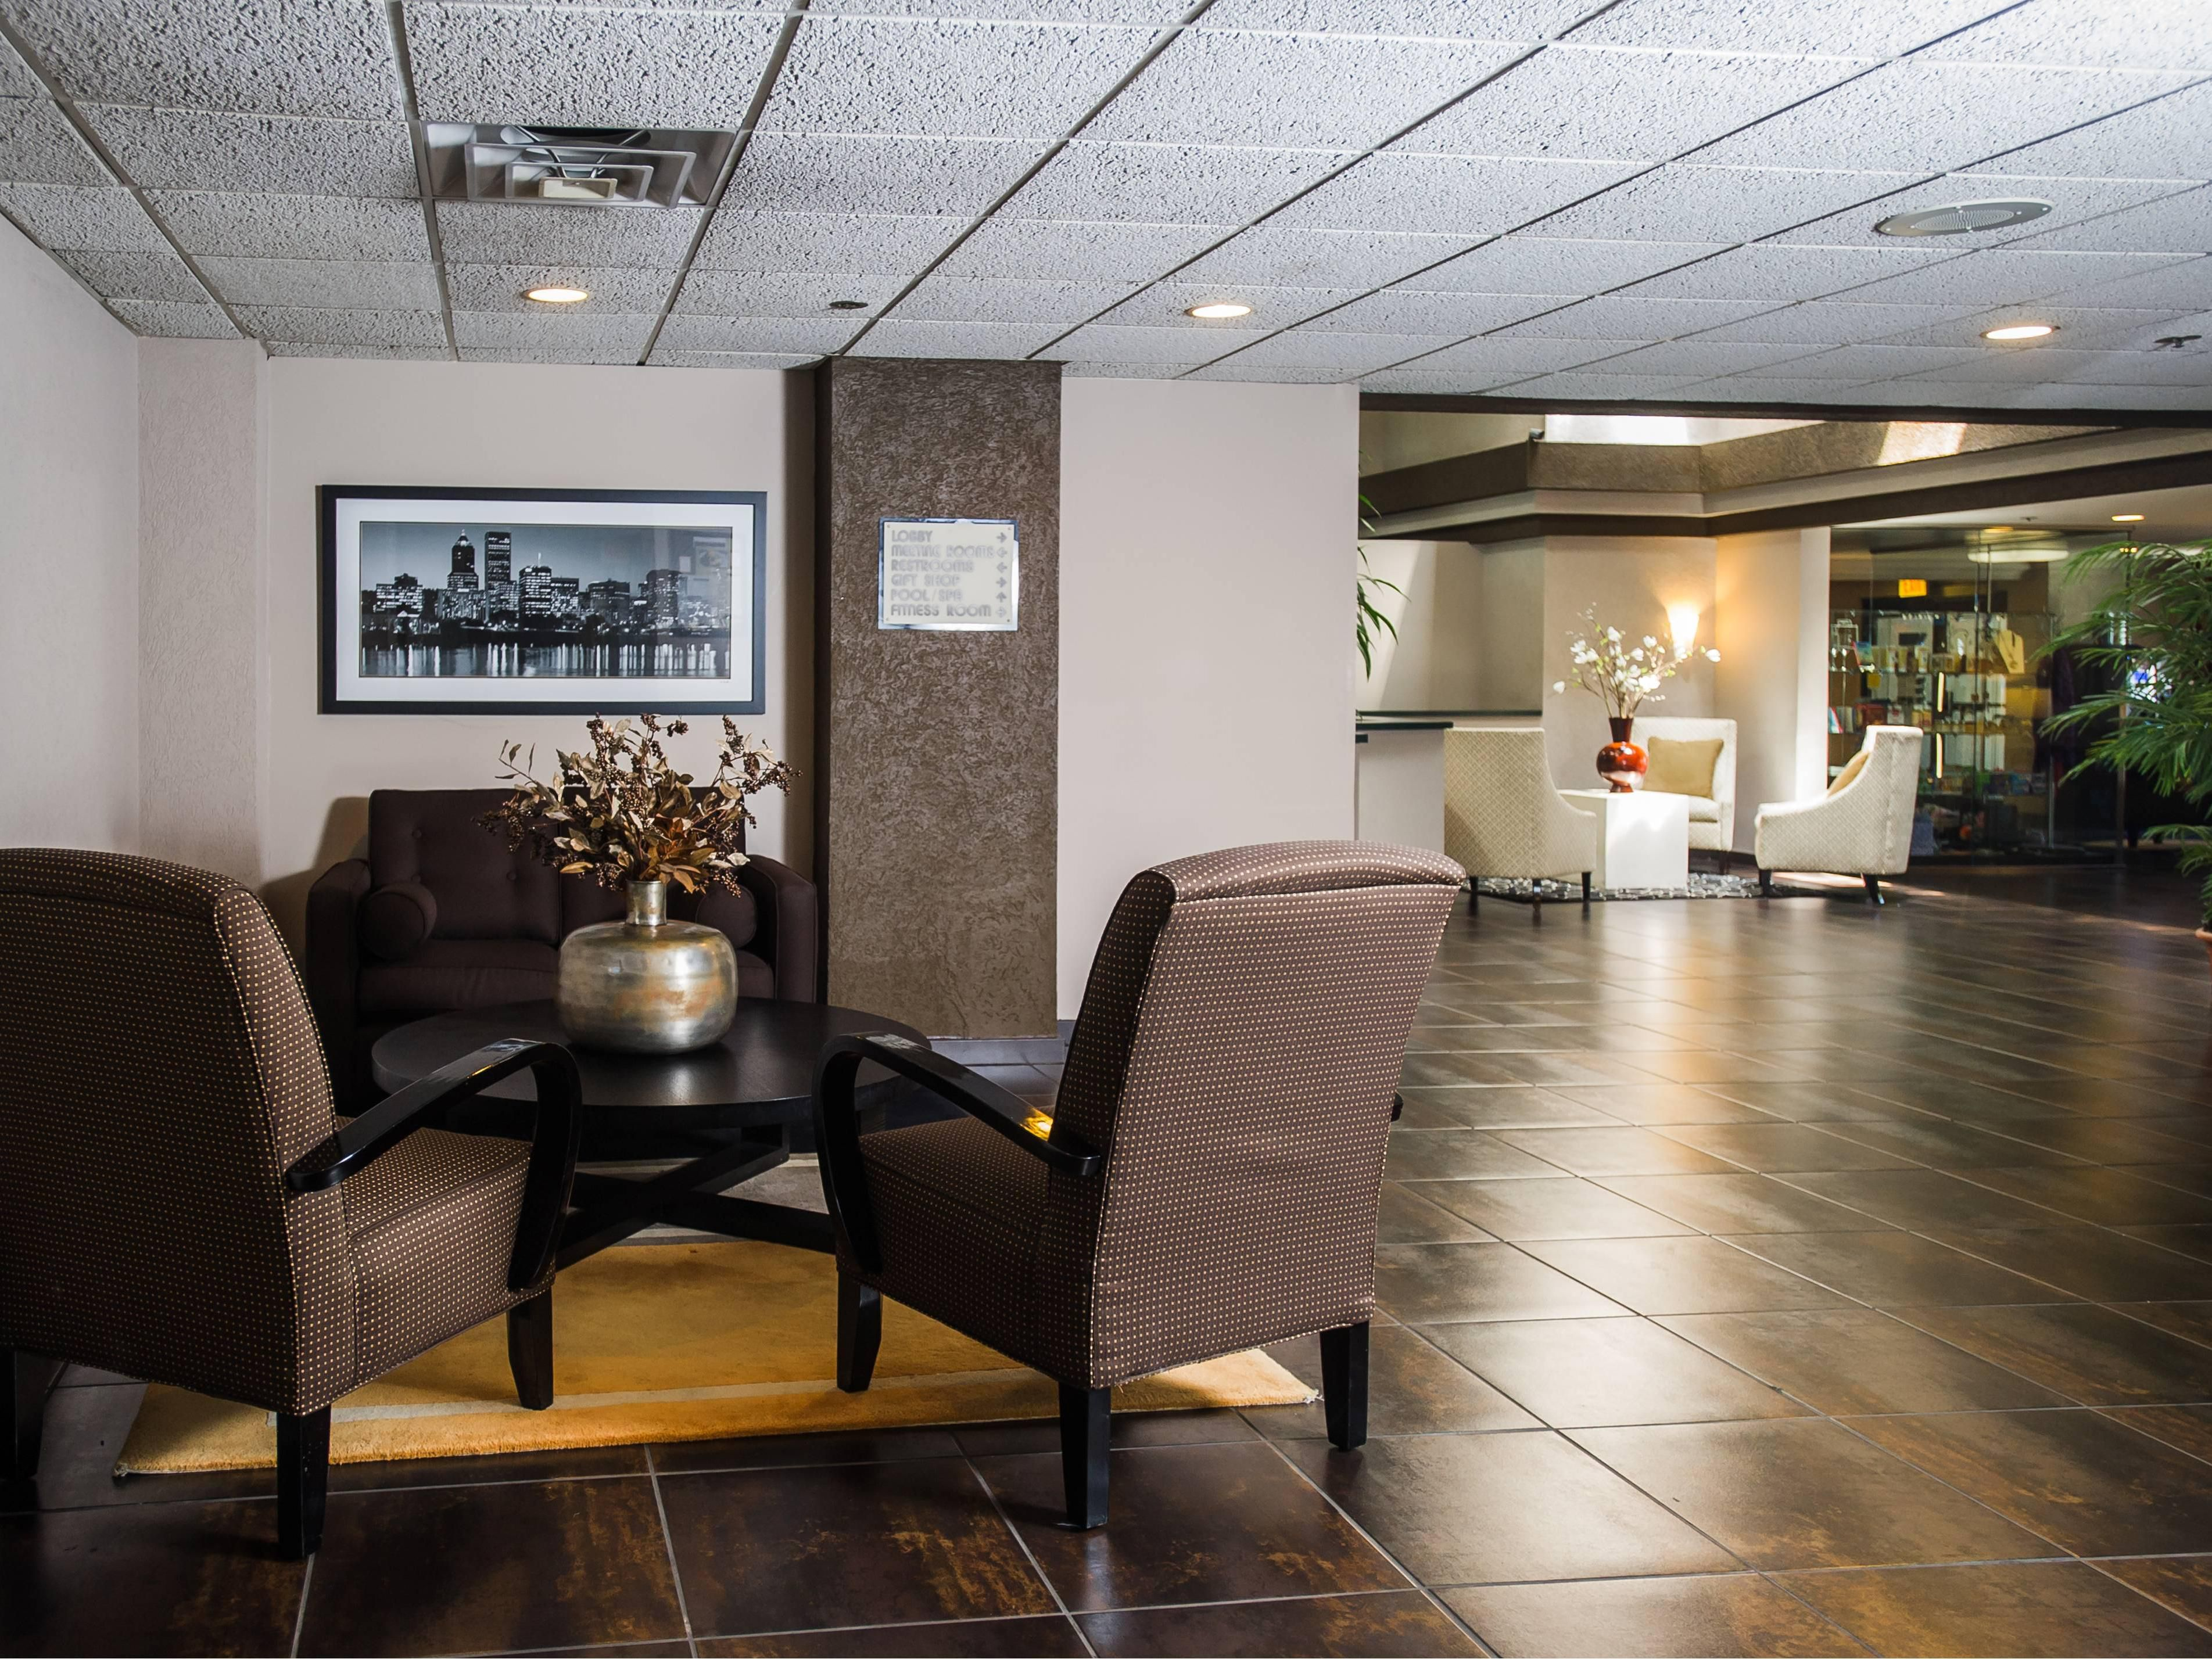 Holiday Inn Portland South/Wilsonville Lobby Seating Areas